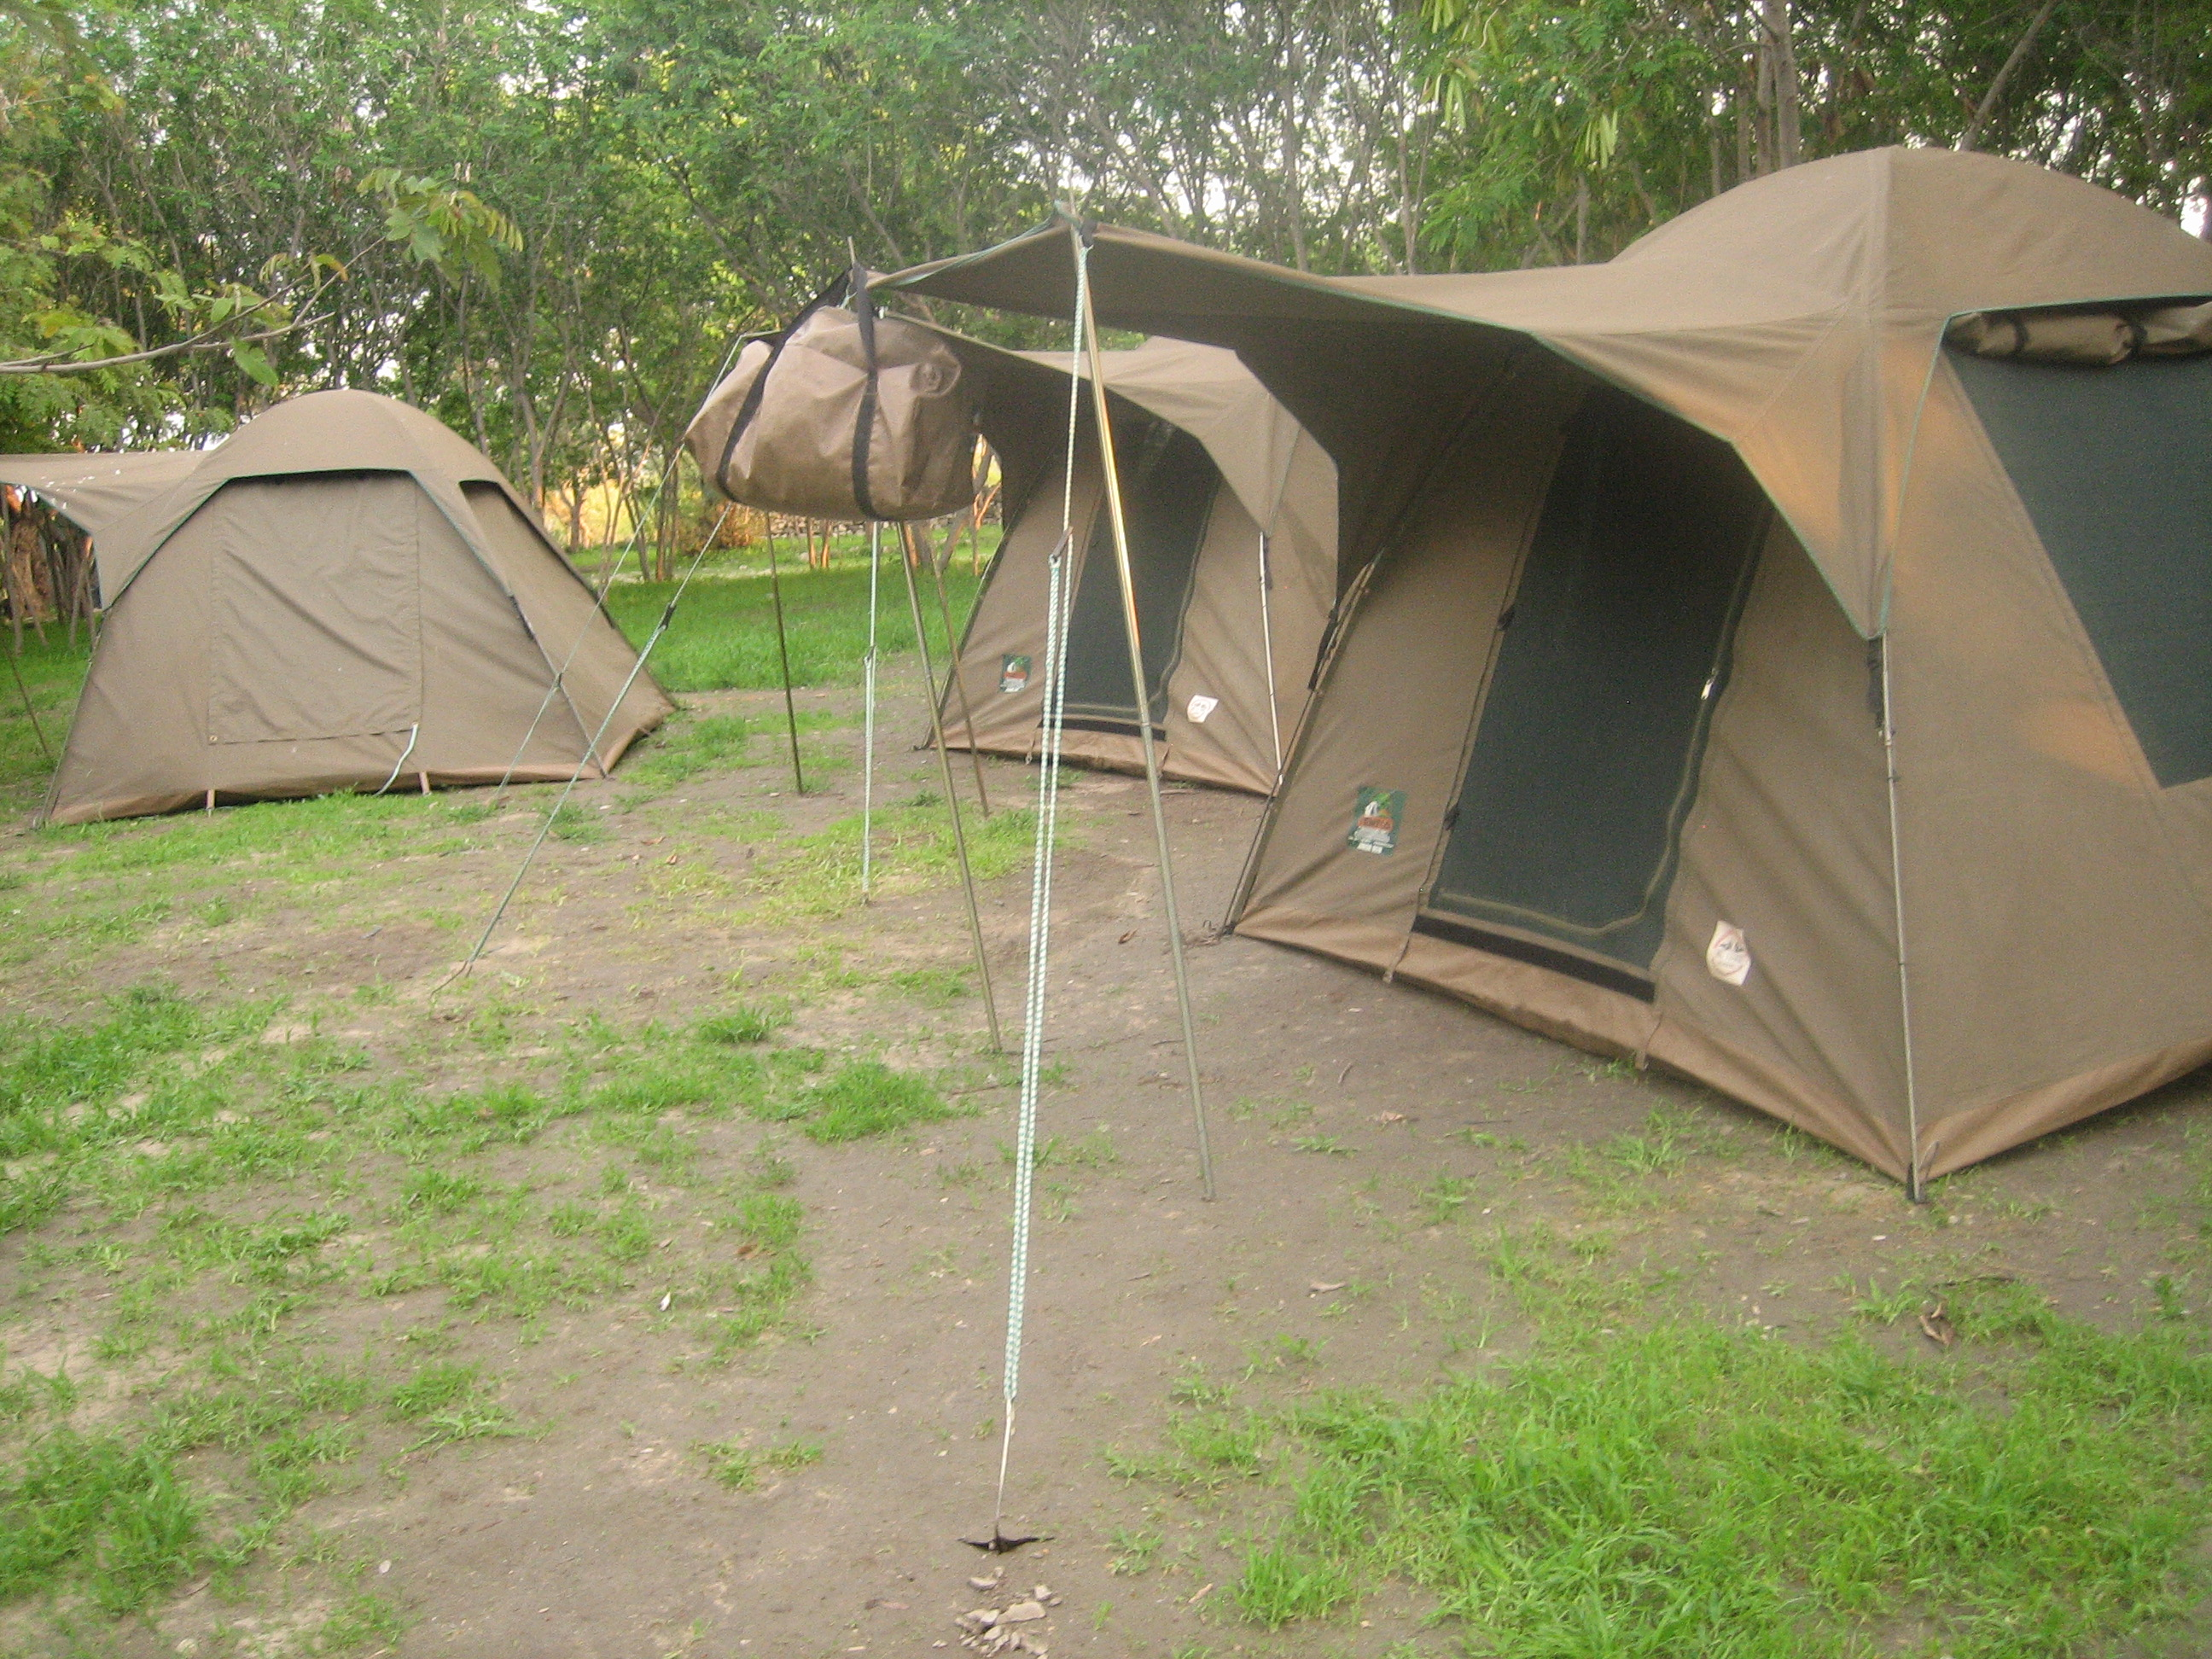 Budget C&ing Safari. Duration 4 Days & Snowcap Tanzania Tours » Budget Camping Safari